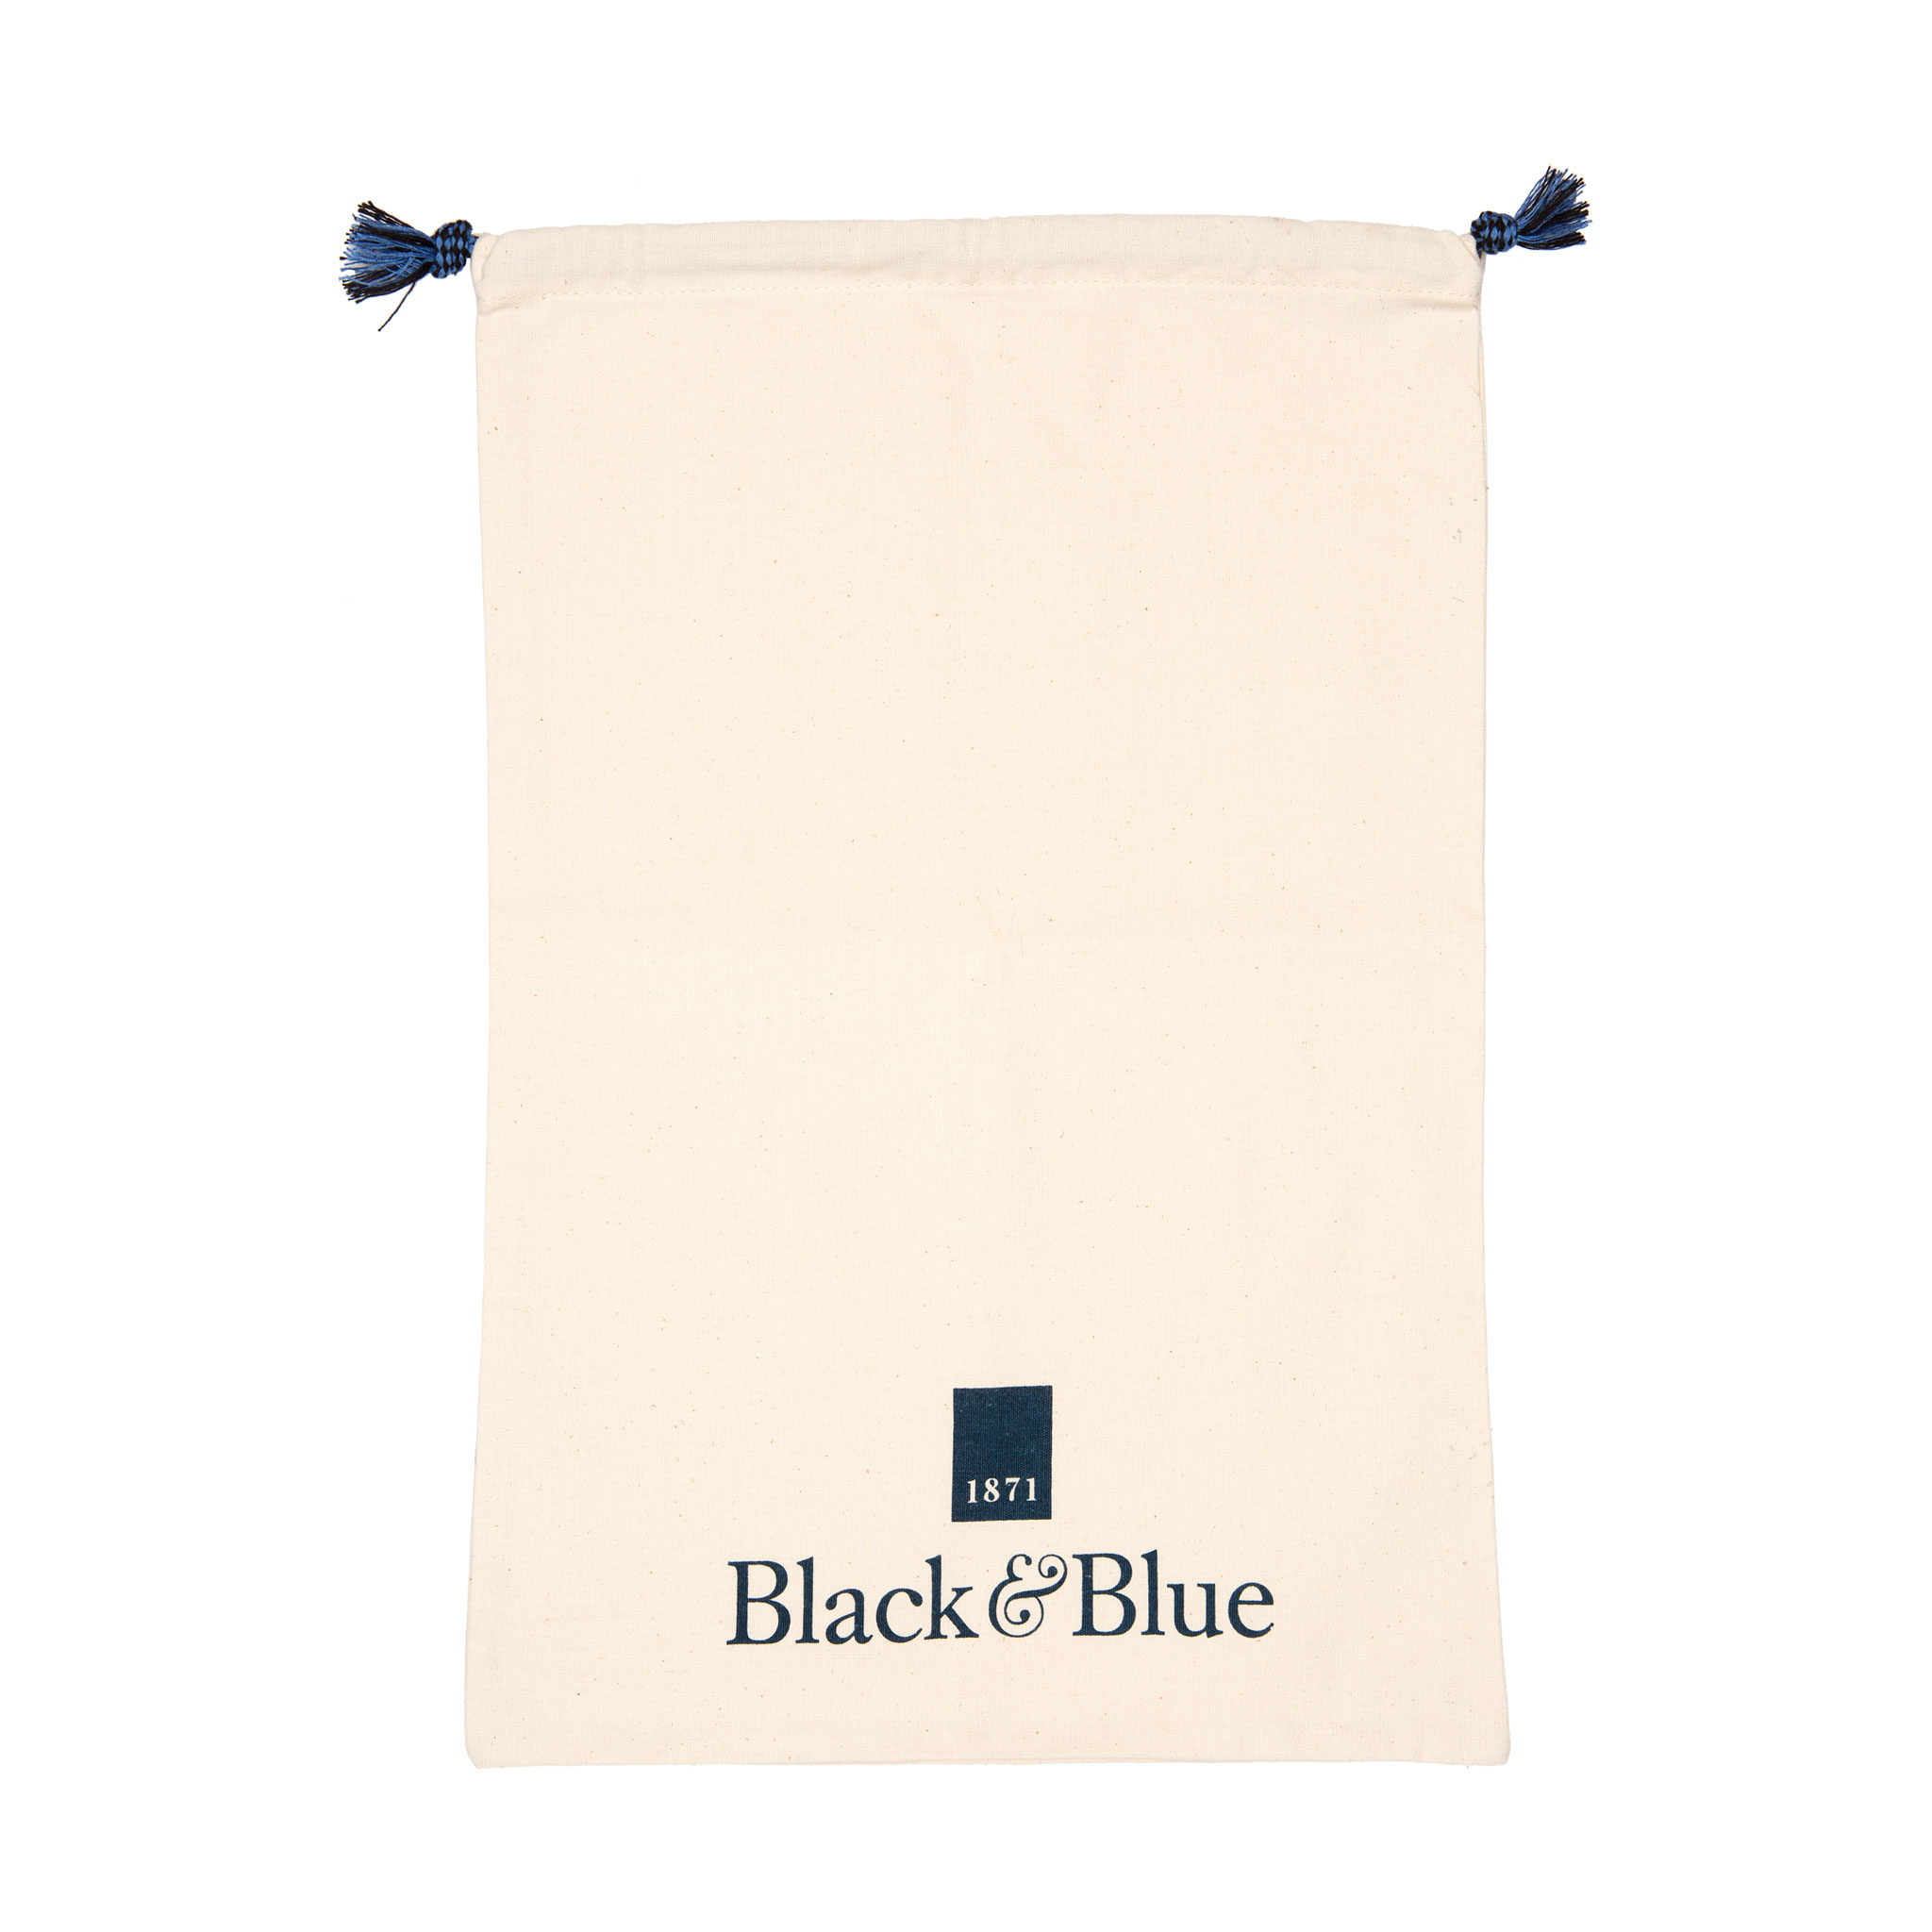 BB1871 Cotton Bag